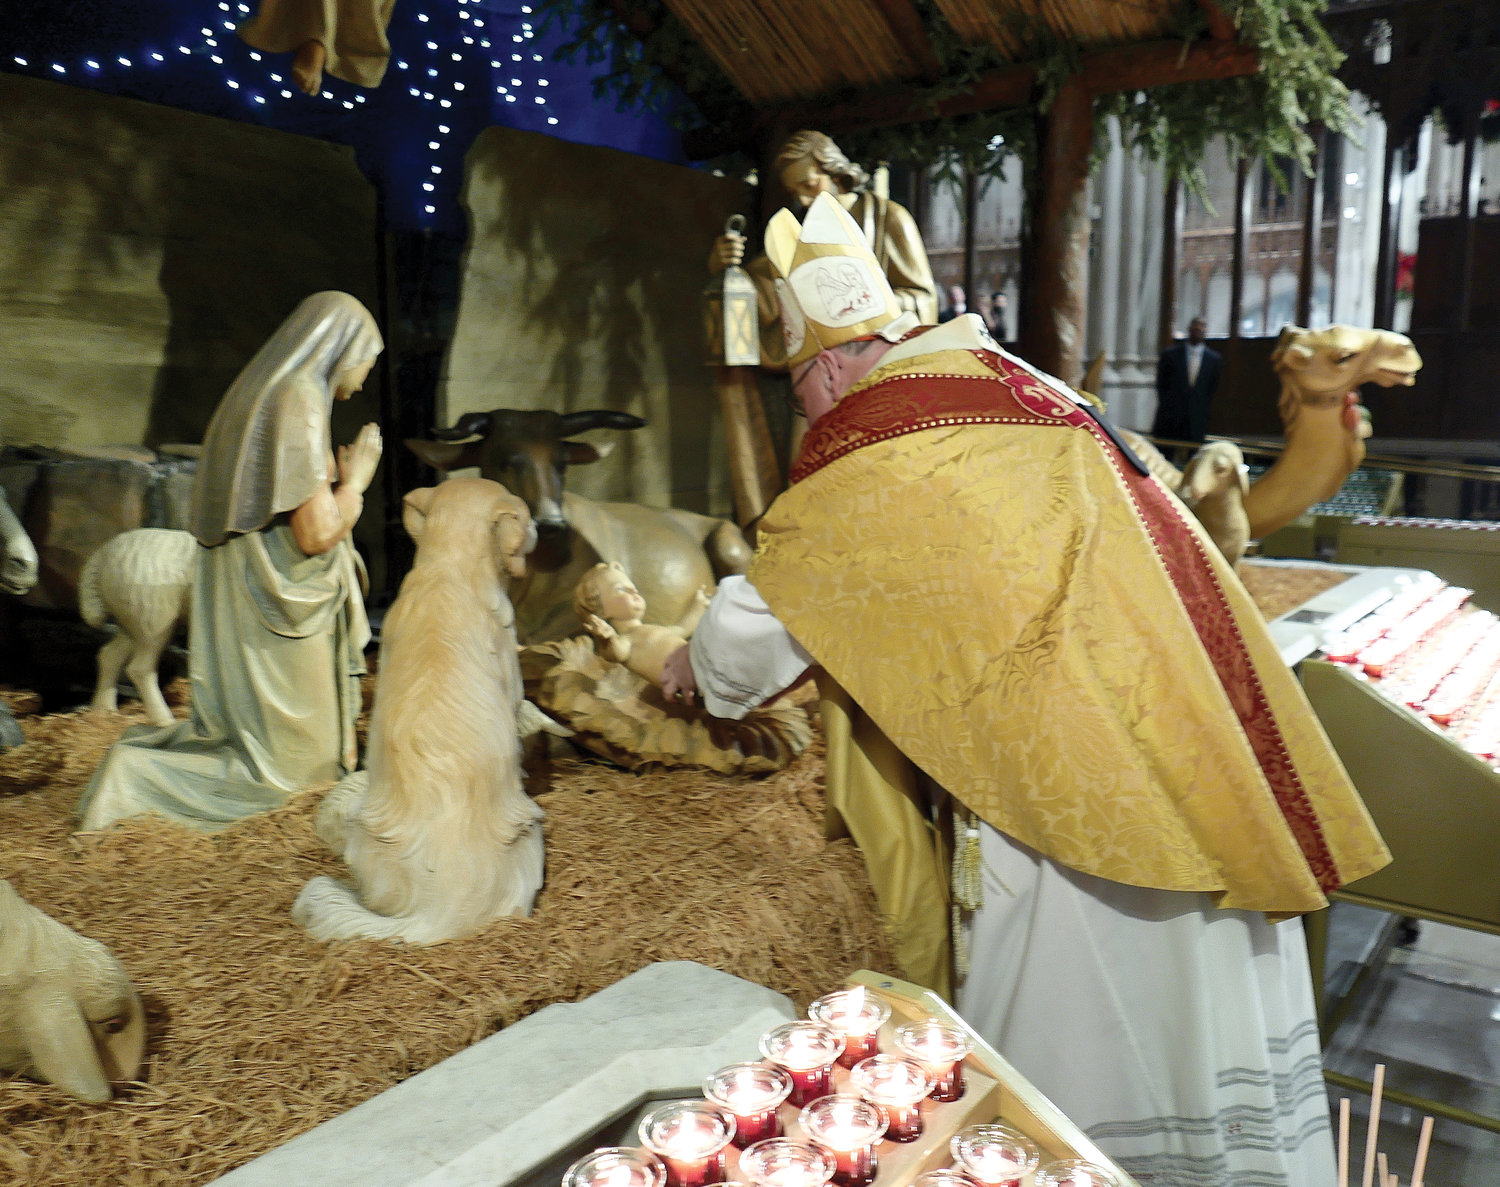 Cardinal Dolan carefully lays a statue of the Infant Jesus into the Nativity manger before blessing the Christmas crèche at the Christmas Midnight Mass he celebrated at St. Patrick's Cathedral Dec. 25.